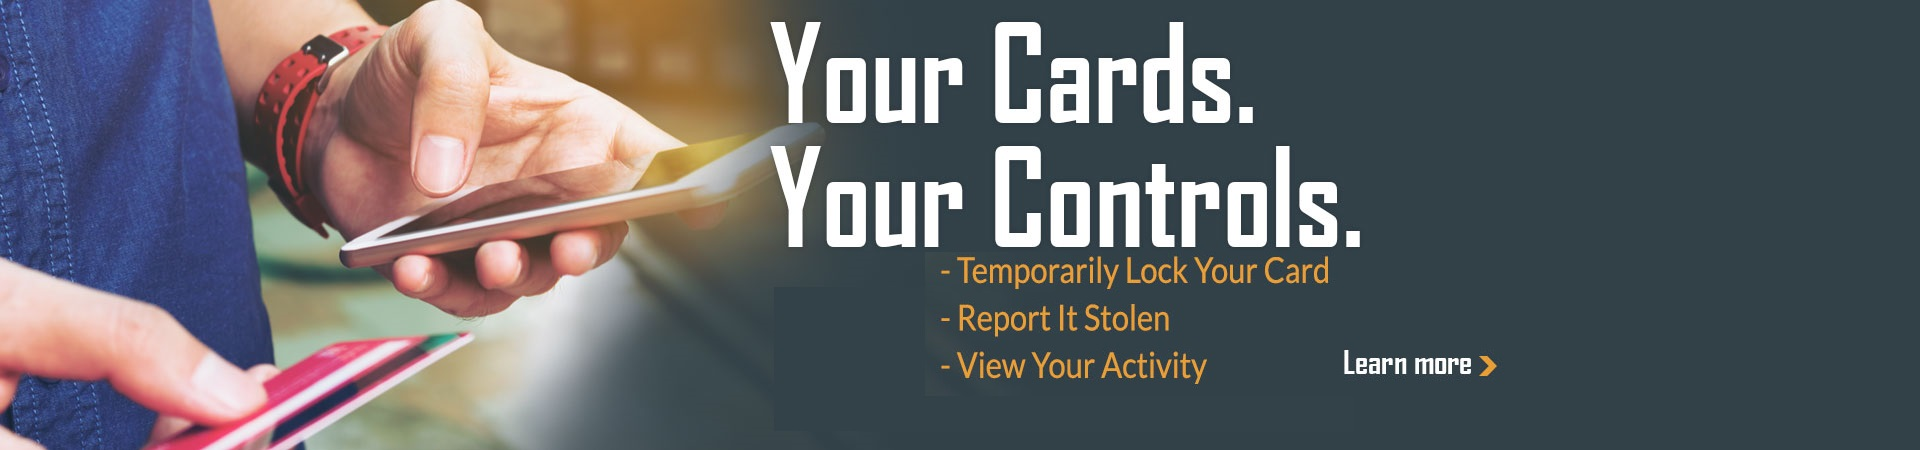 Temporarily lock your card, report it stolen, and view your activity with card controls